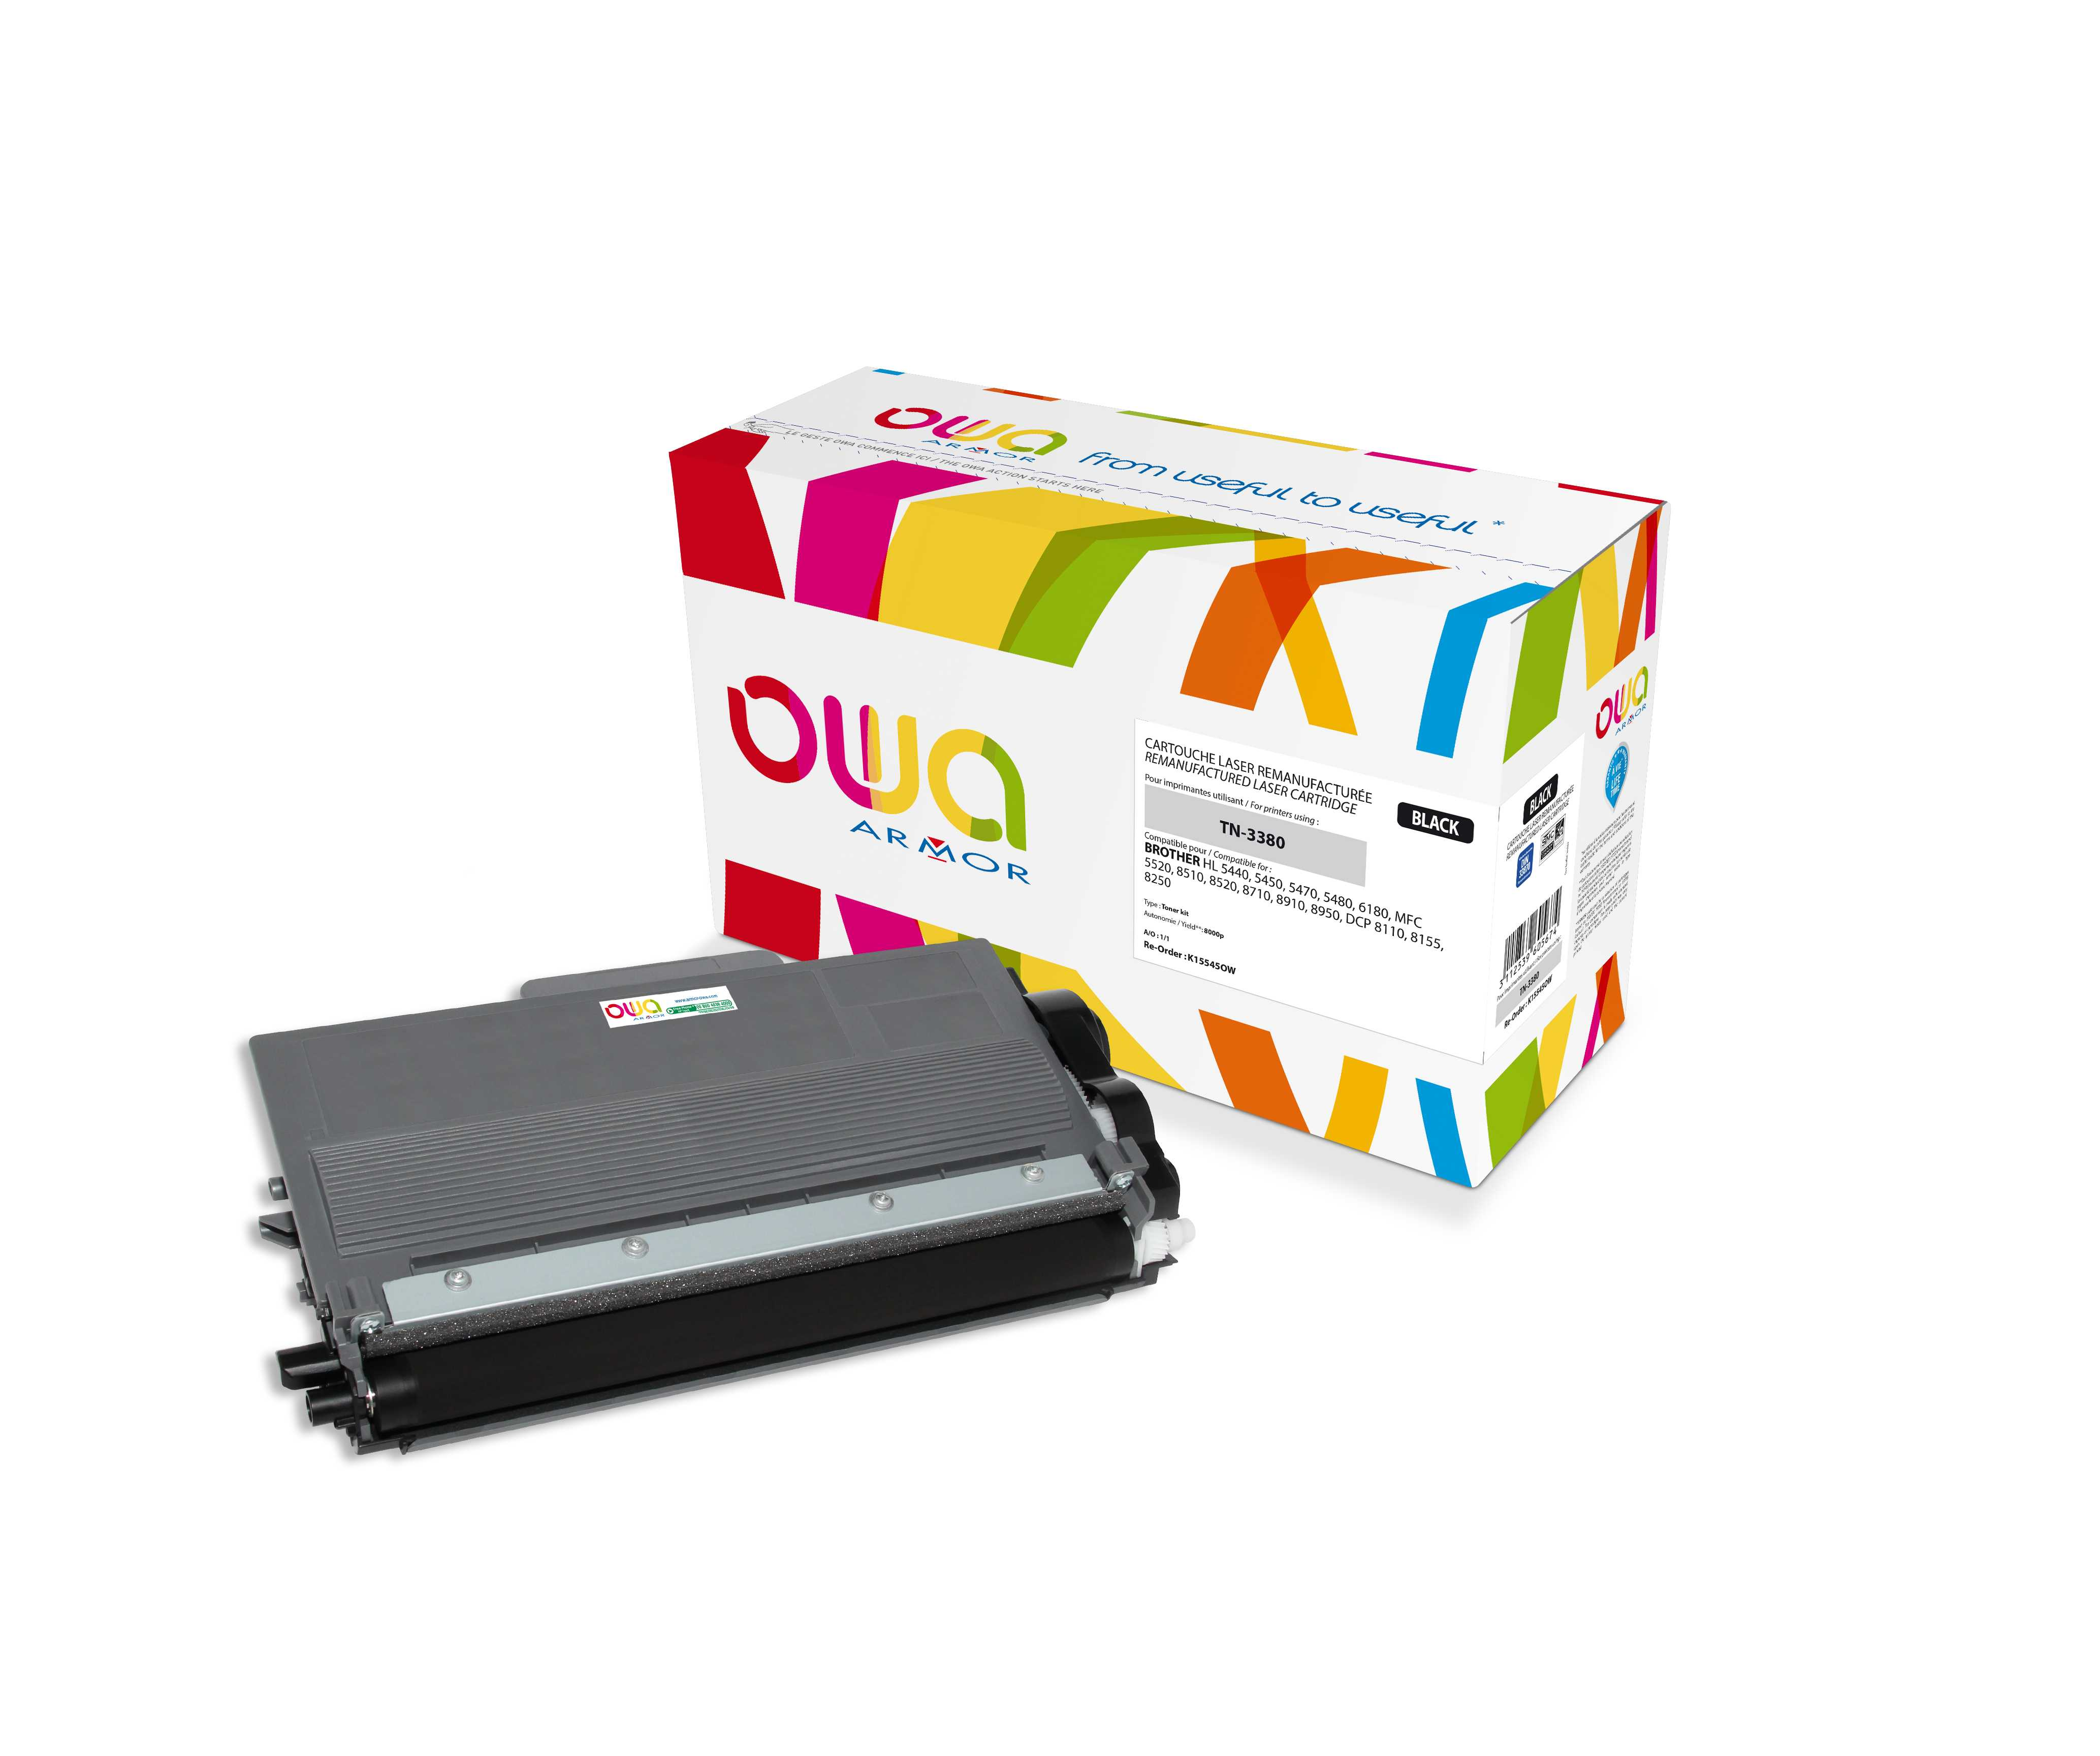 OWA Armor toner pro Brother,8.000str (TN3380) Bk